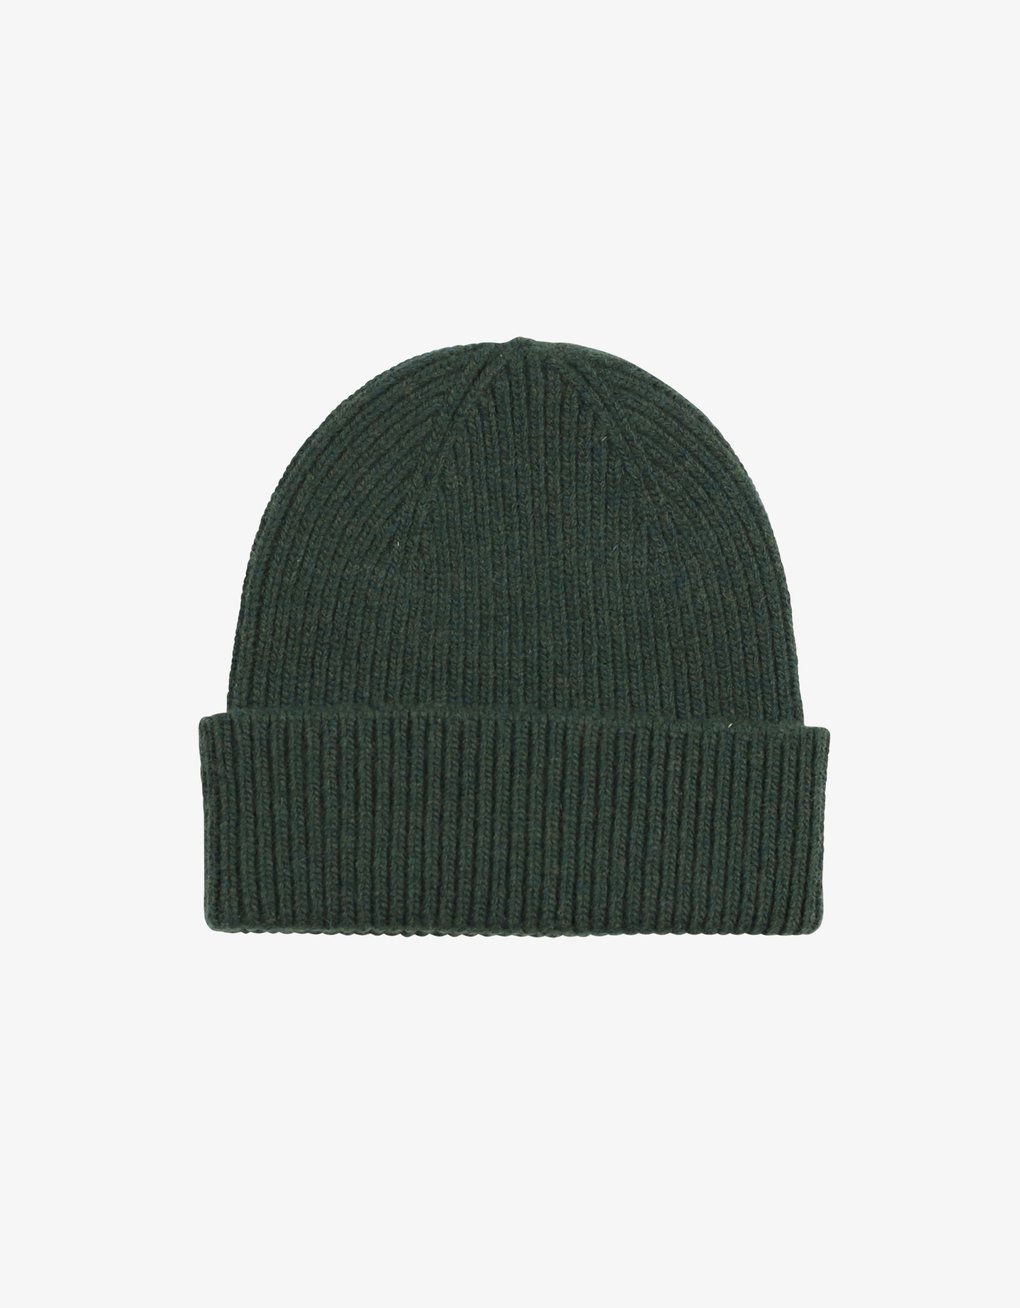 COLORFUL STANDARD | Merino Wool Beanie | Hunter Green - LONDØNWORKS